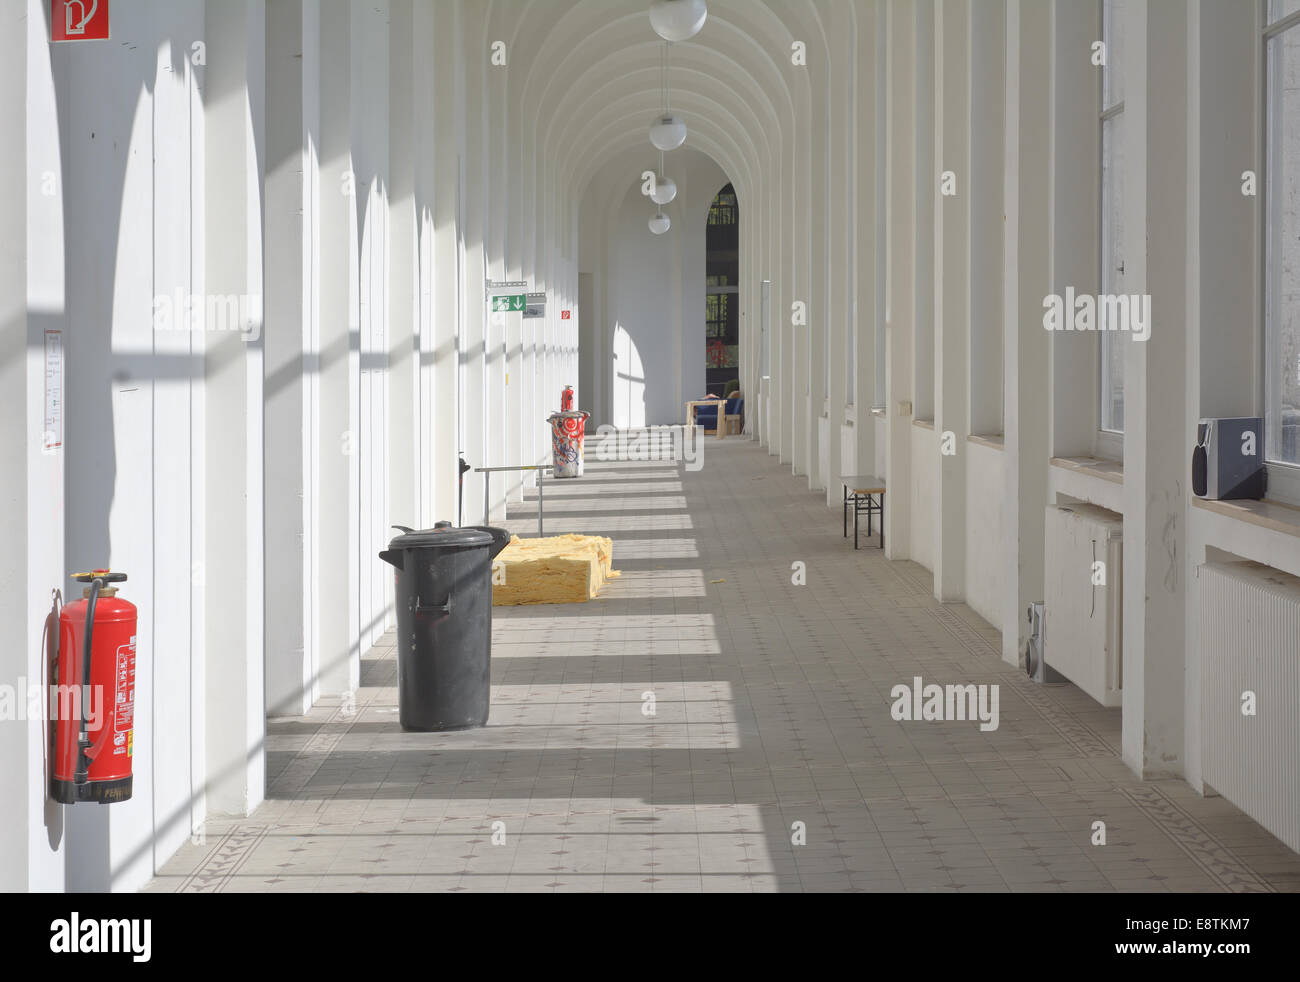 Interior View of Corridor with Trash Can and Workshops - Stock Image